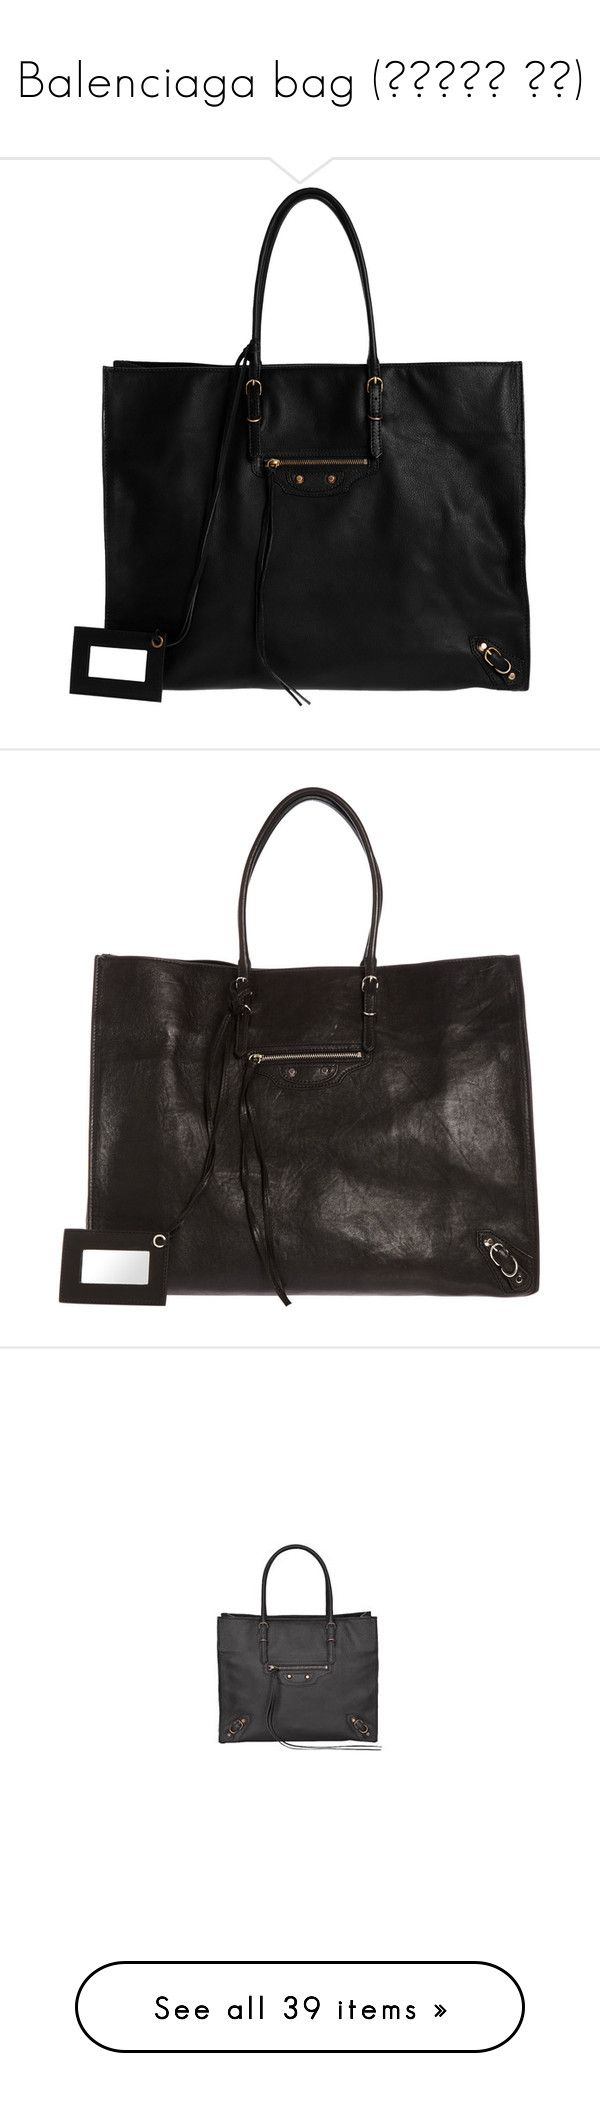 """Balenciaga bag (발렌시아가 가방)"" by ggaggamury ❤ liked on Polyvore featuring bags, handbags, tote bags, balenciaga, totes, top handle purse, balenciaga purse, tote bag purse, travel tote bags and women"